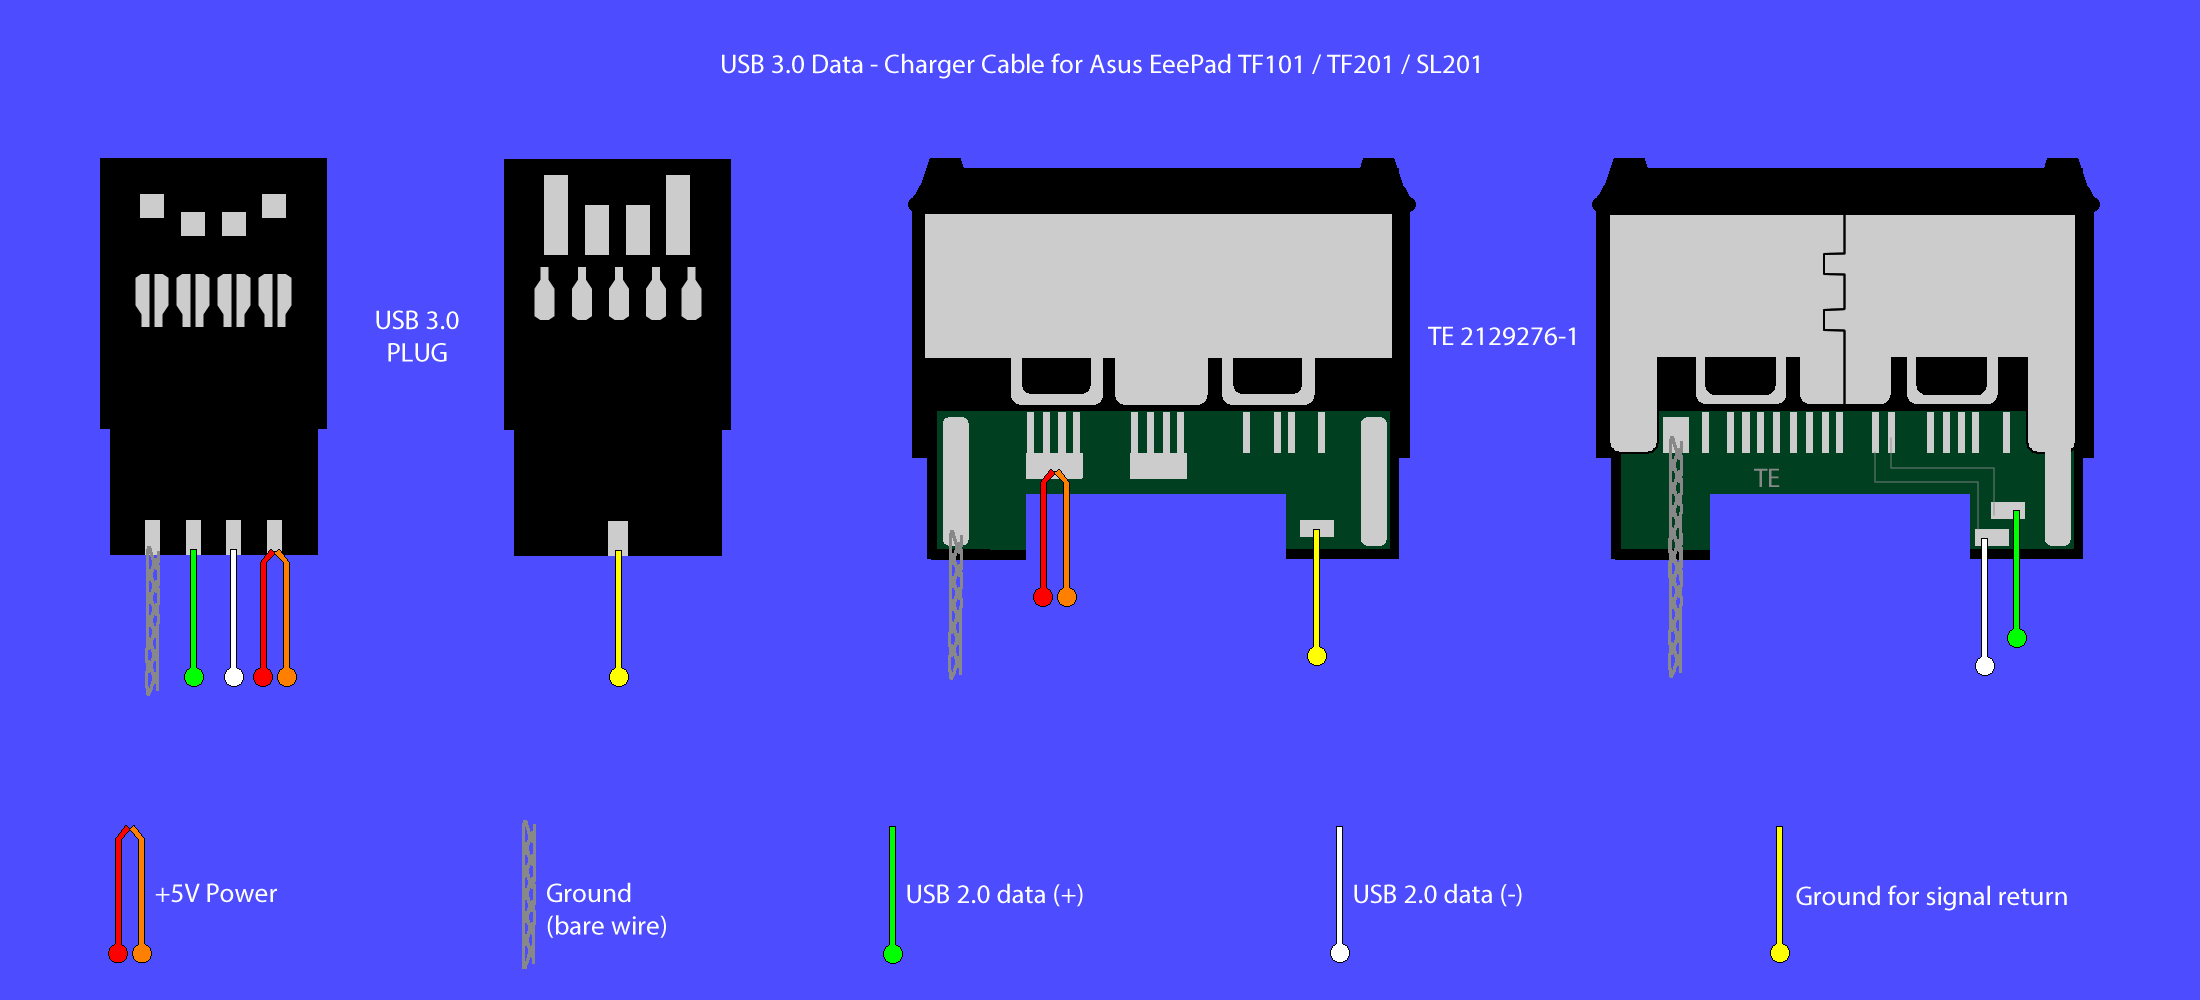 Samsung Galaxy Tablet Charger Wiring Diagram | Wiring Diagram - Samsung Galaxy Tab 2 Charger Wiring Diagram